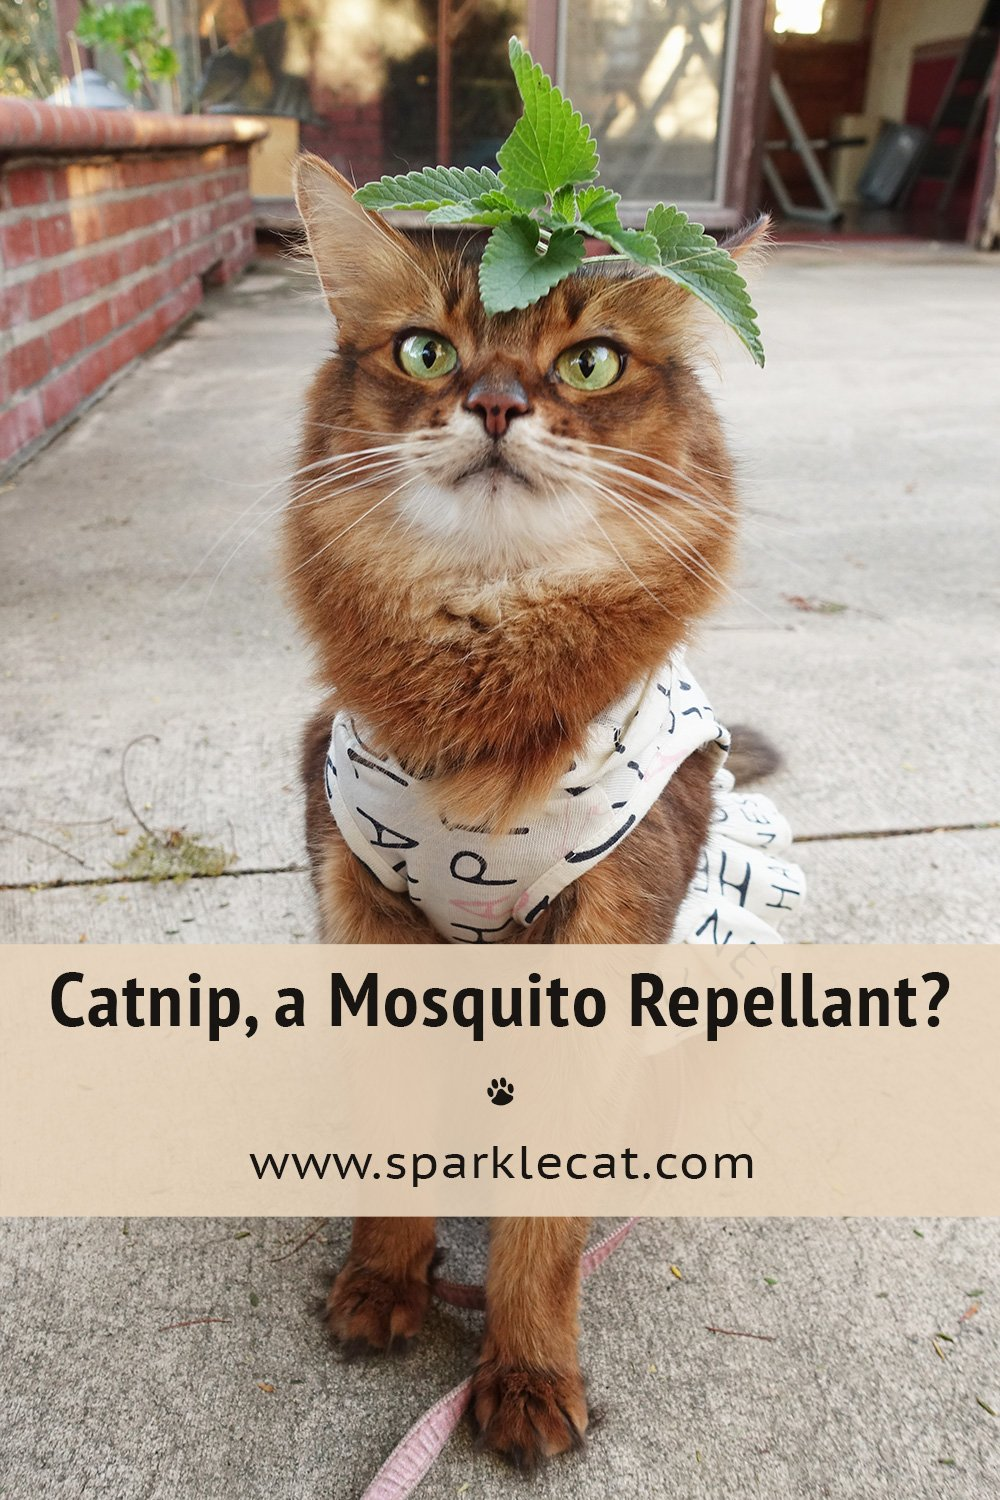 Is Catnip a Mosquito Repellant? Wow!